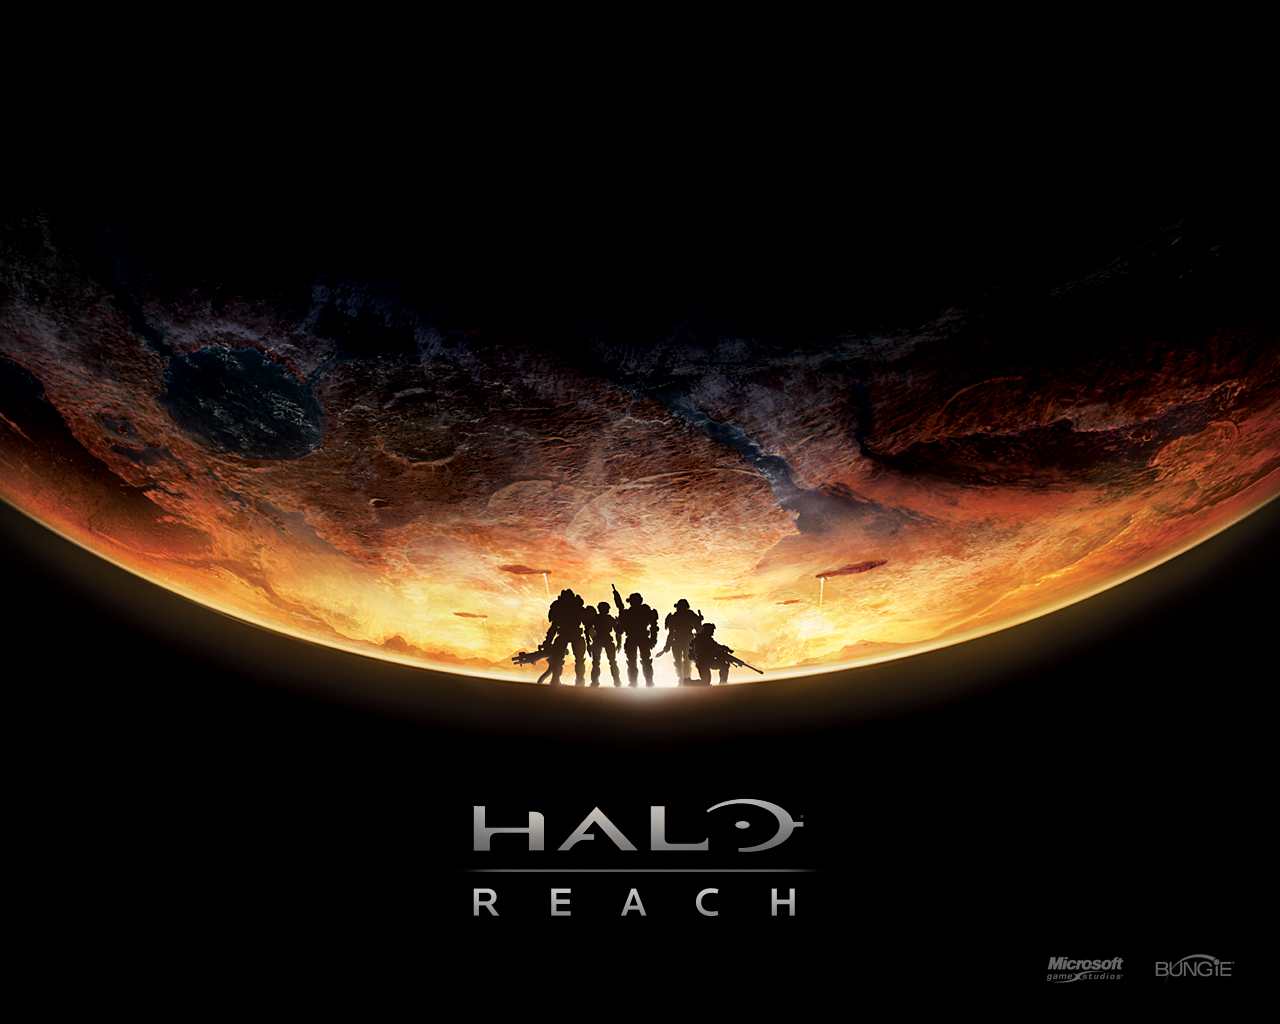 halo-reach-title-screen-huge